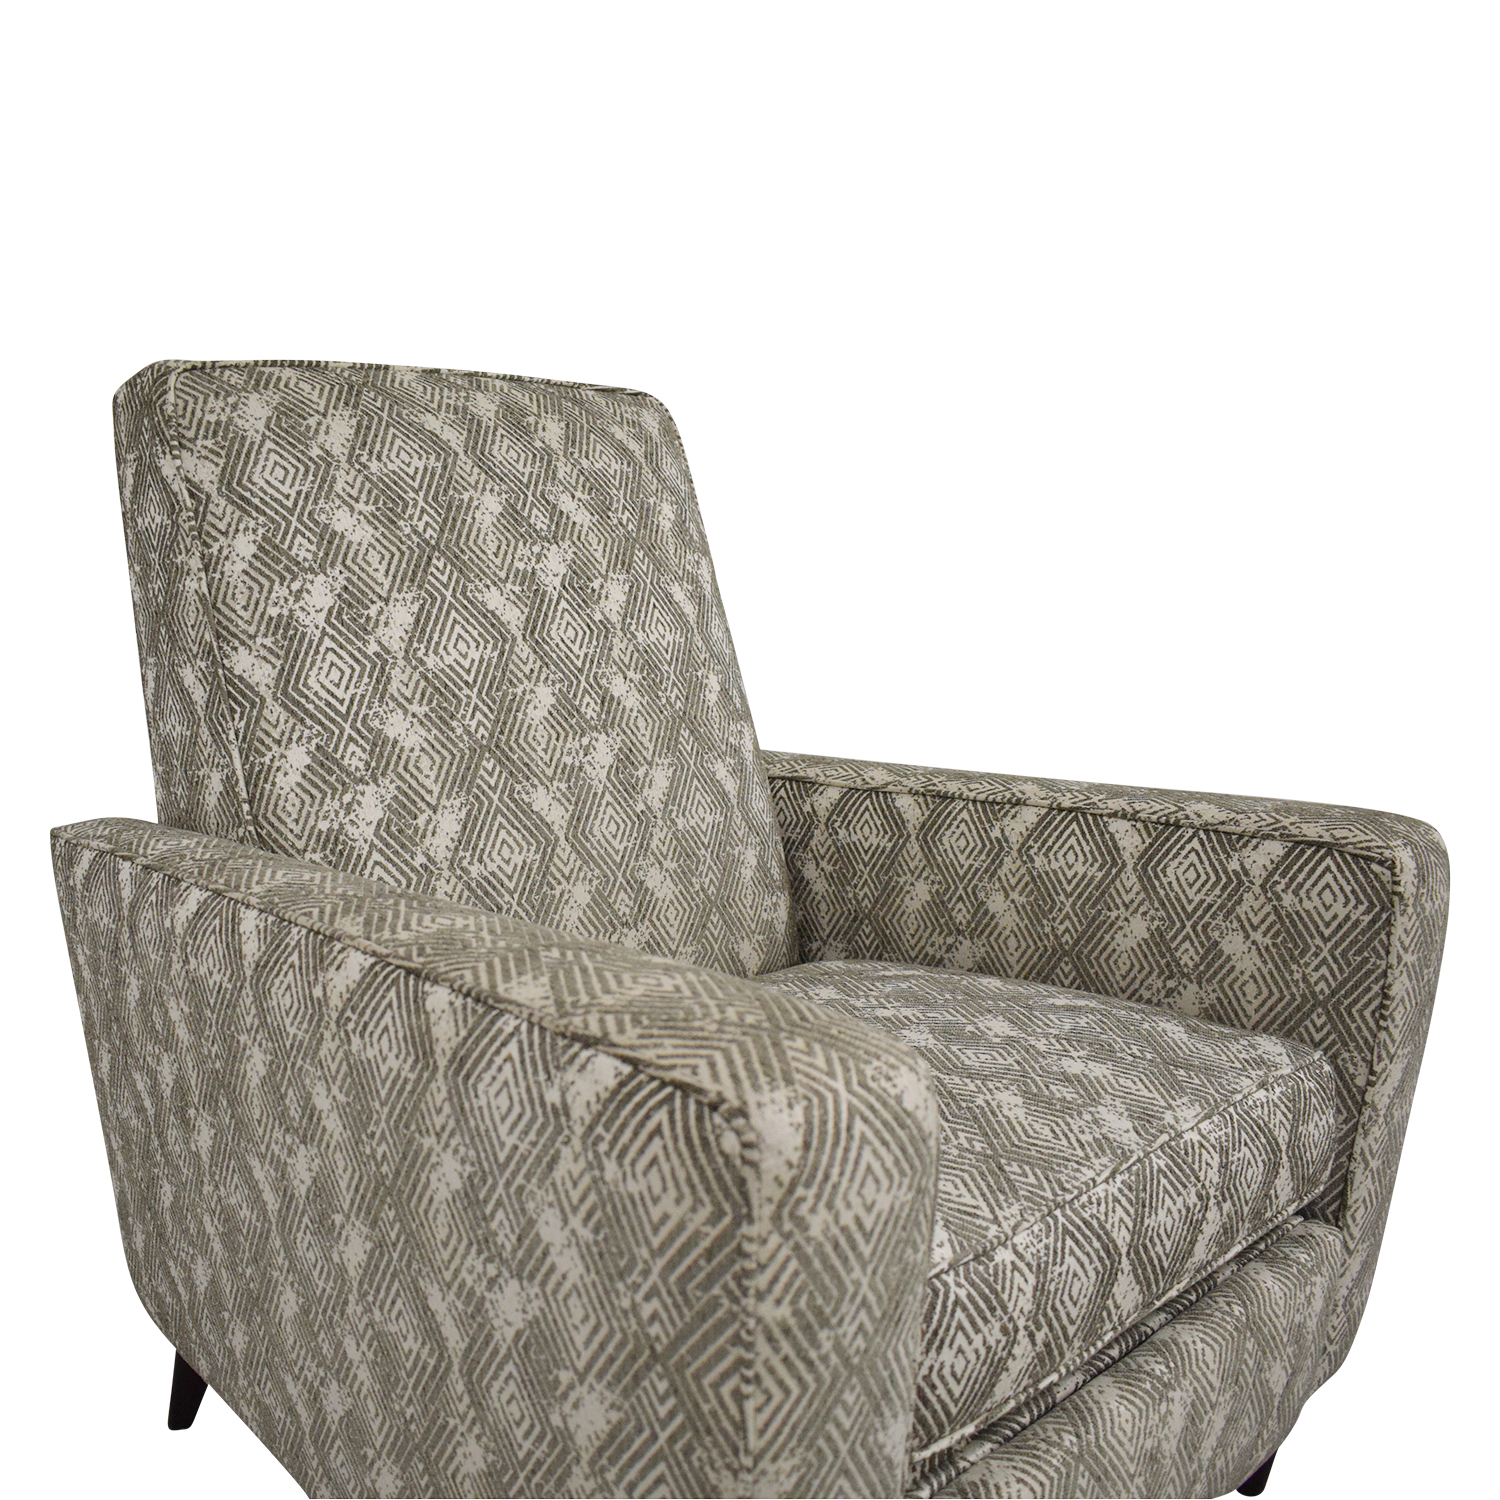 Crate & Barrel Torino Recliner / Accent Chairs